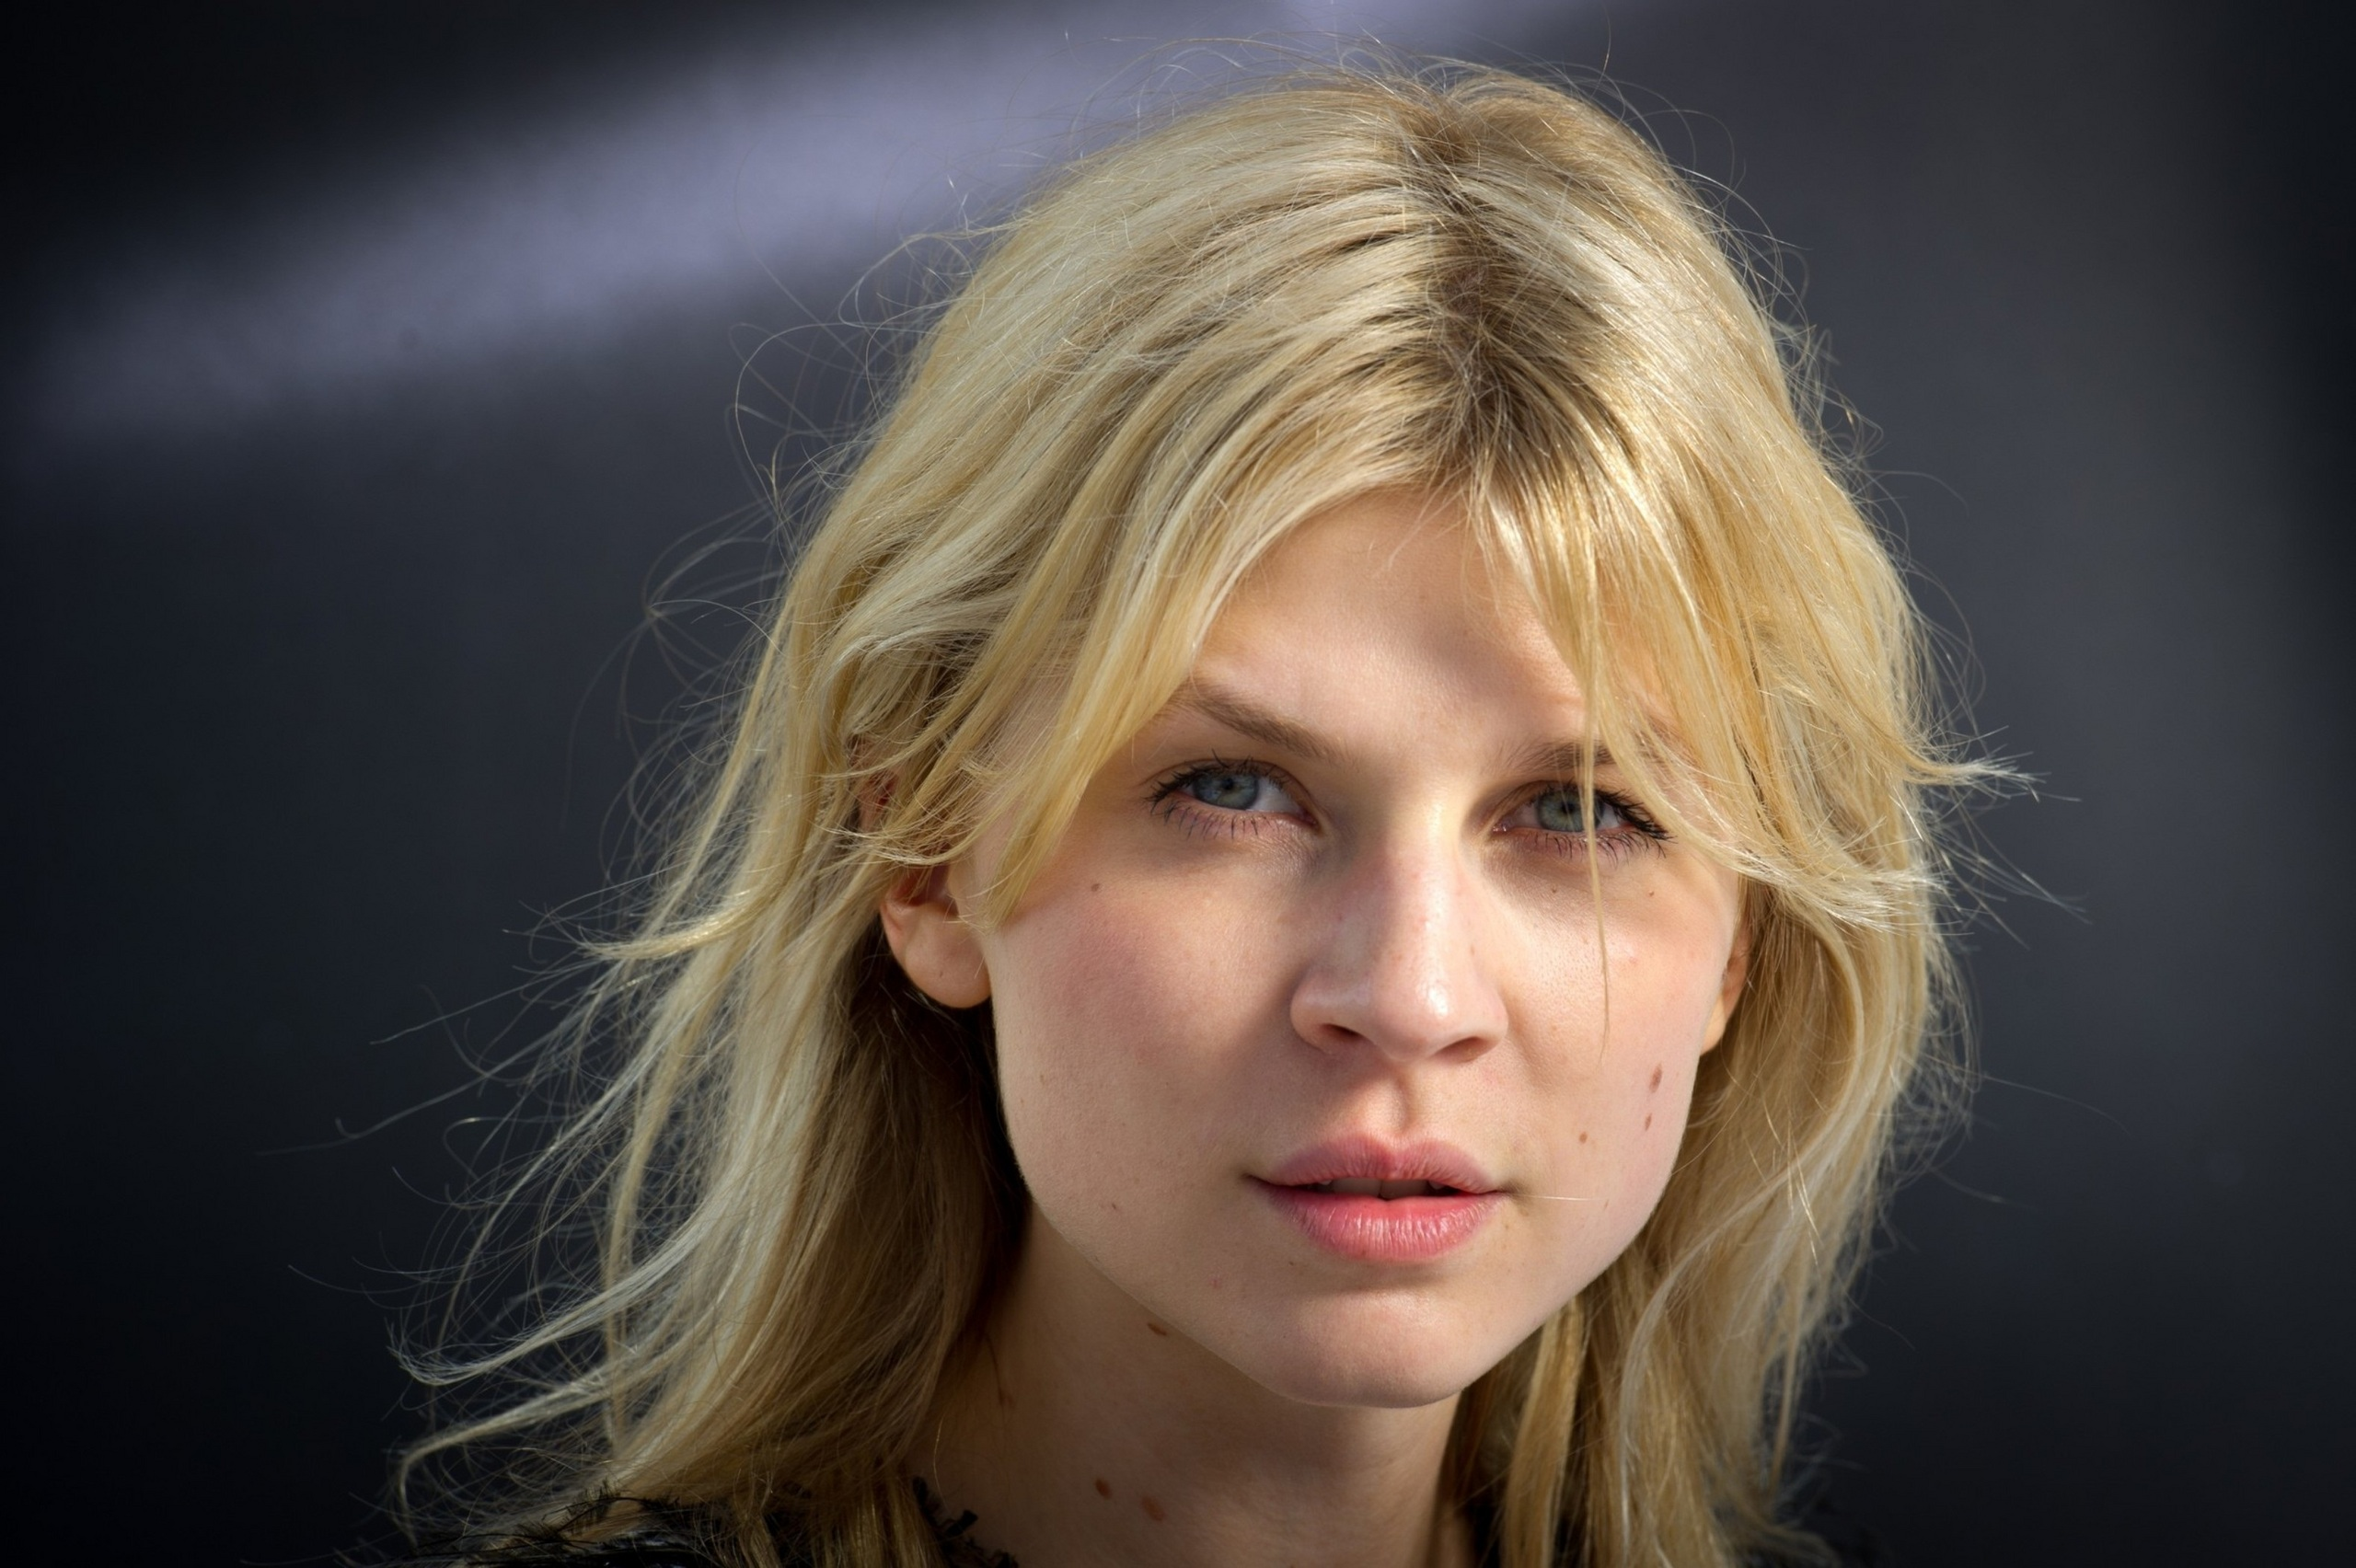 clemence poesy images photoshoot by martin bureau hq hd. Black Bedroom Furniture Sets. Home Design Ideas